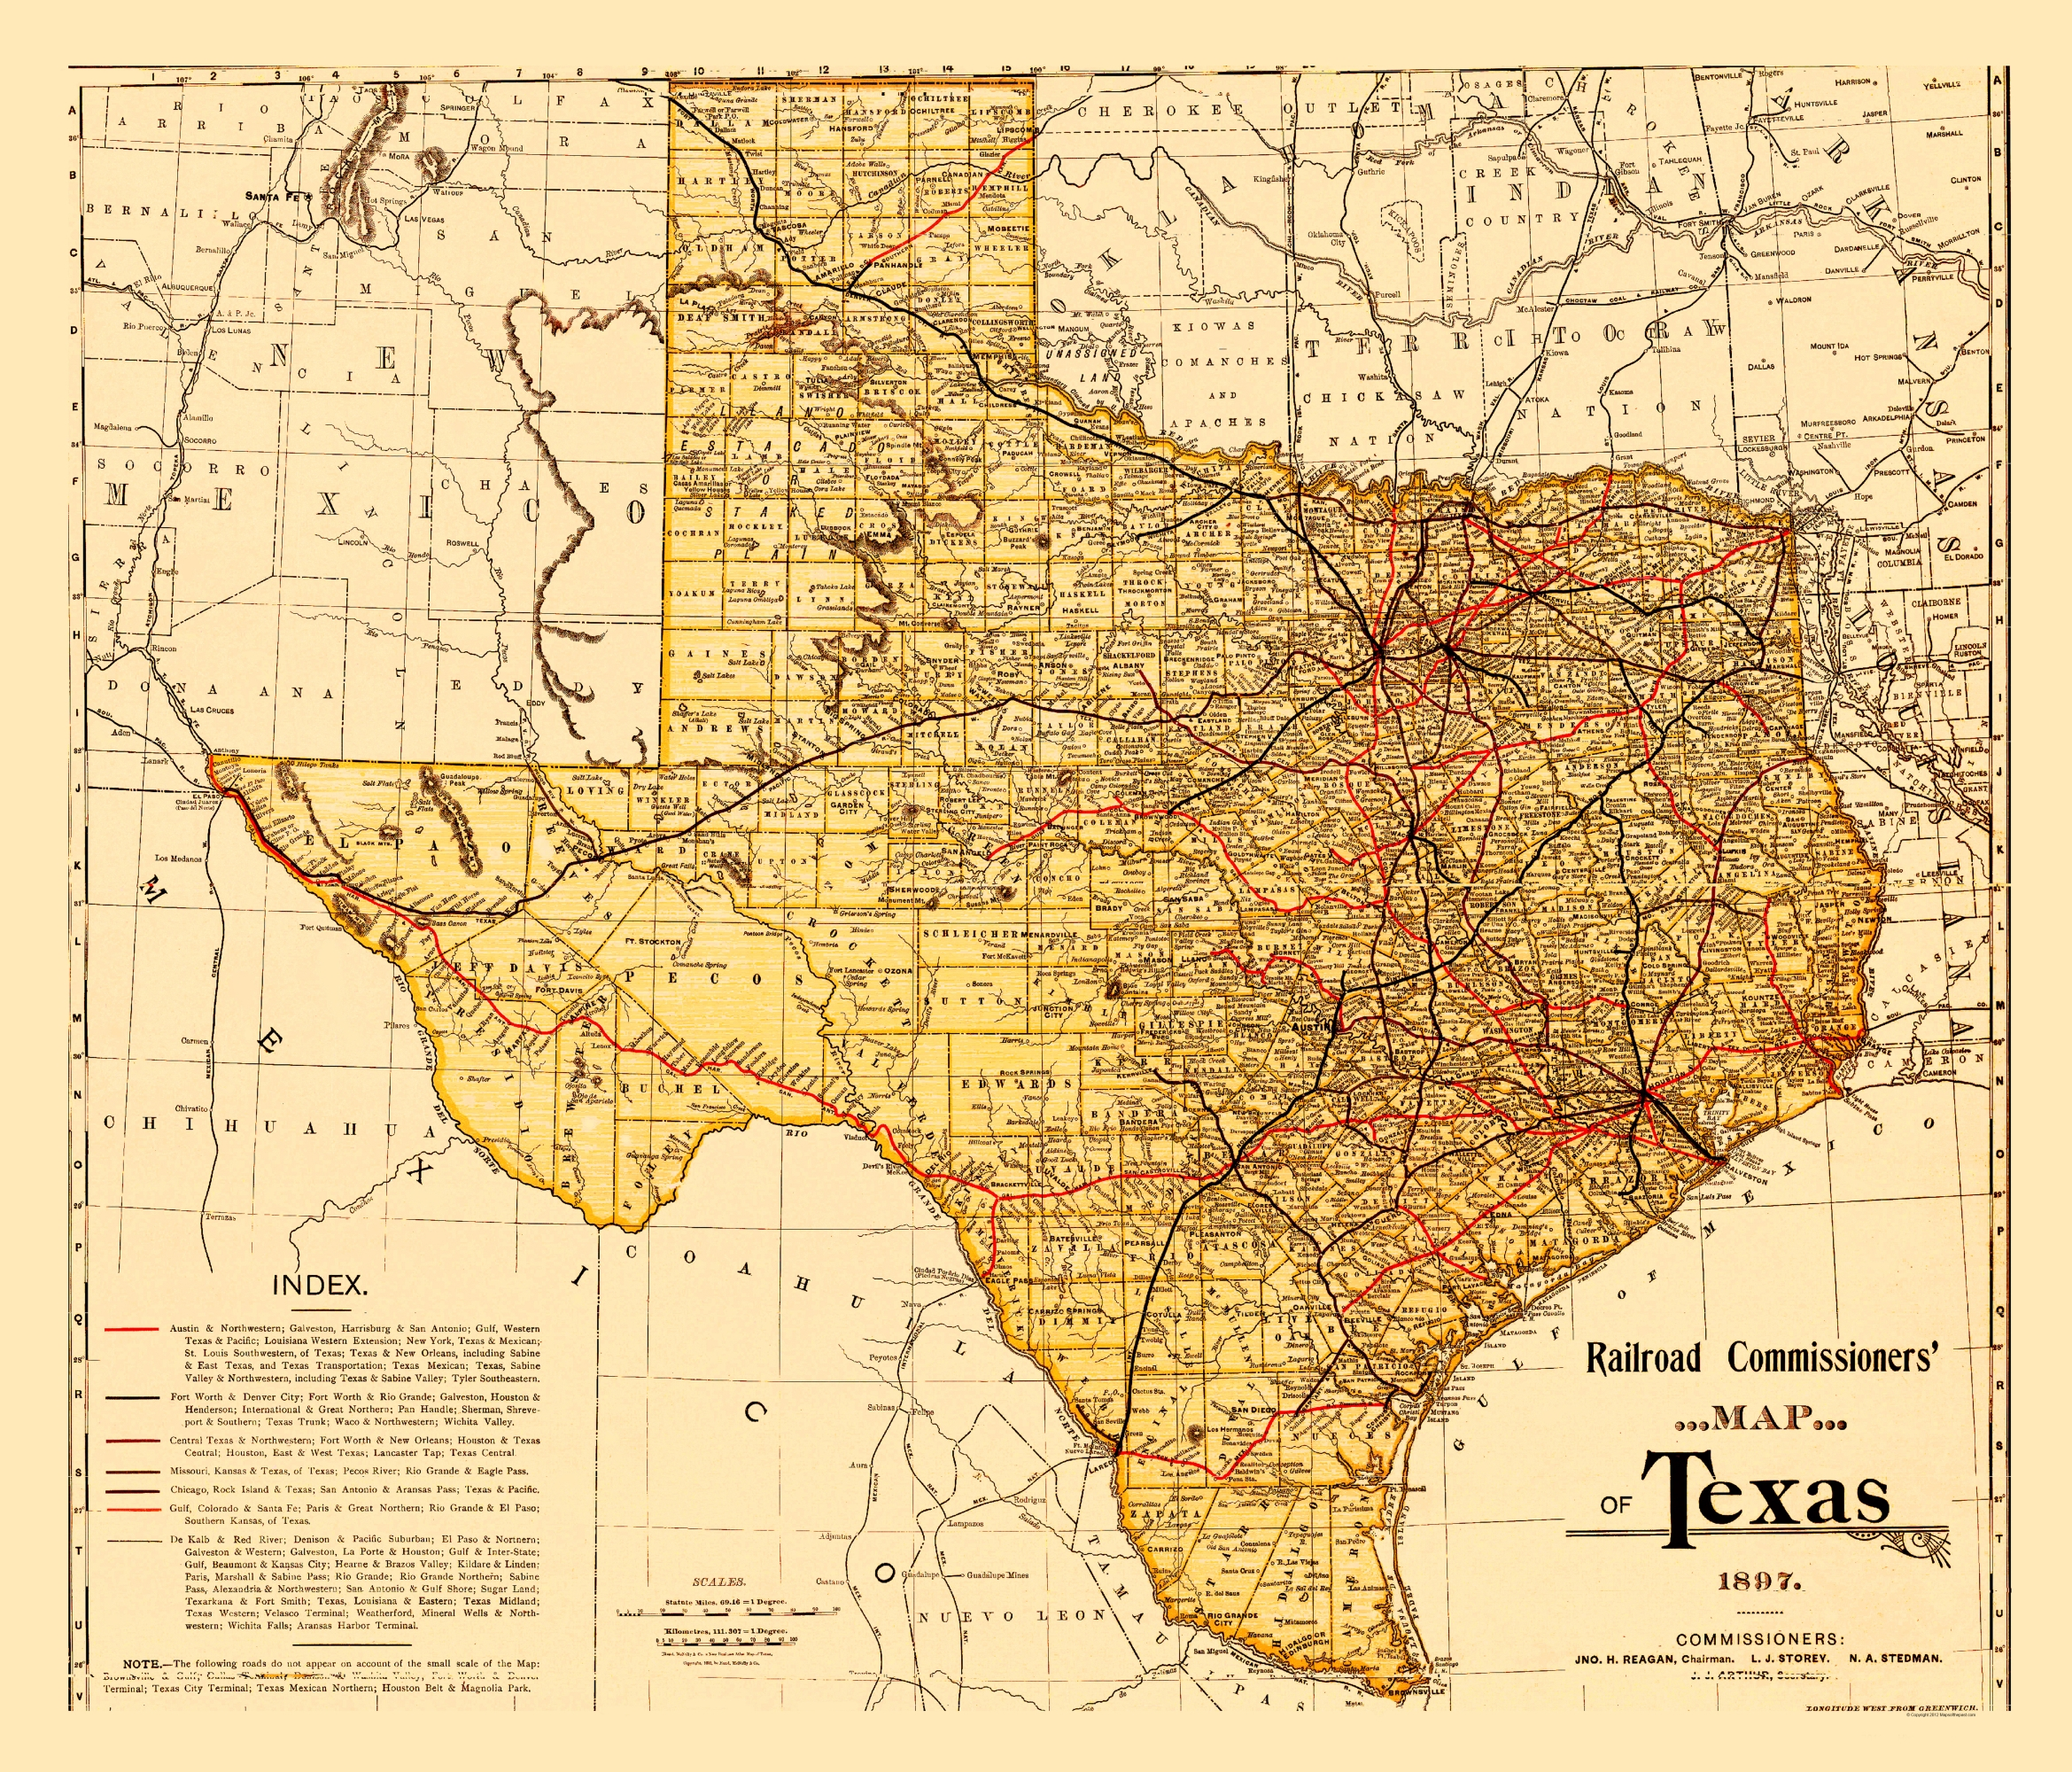 Old State Map - Railroad Commissioners Map of Texas 1897